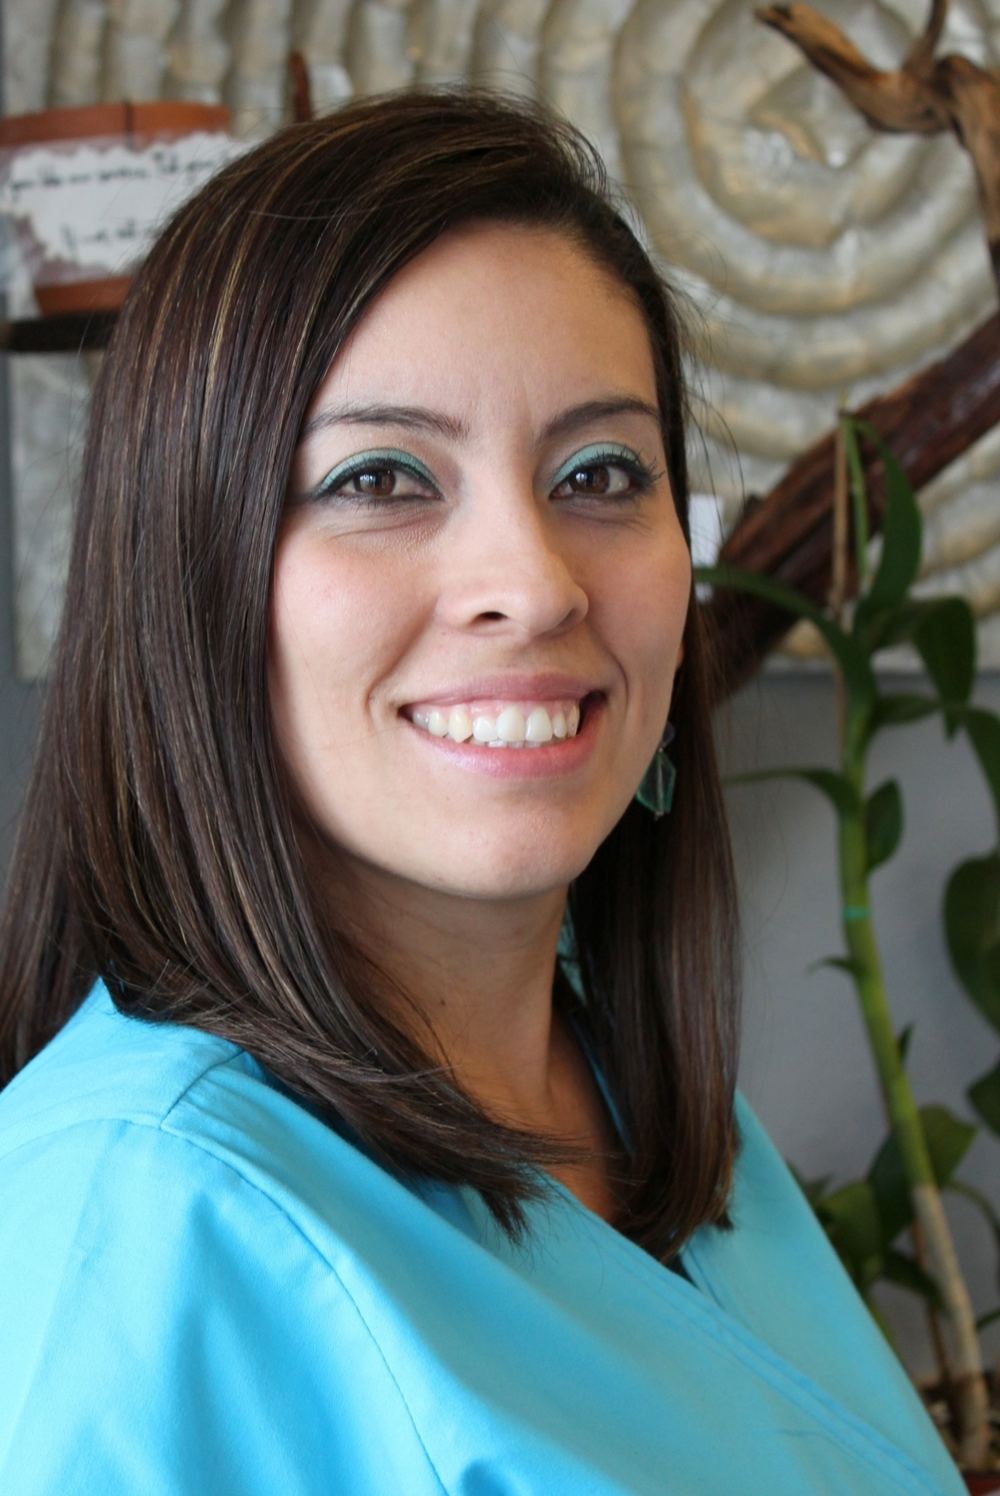 Monica, Dr. Nguyen V. Nguyen, DMD DDS, Magnolia Dental, Dentist, Orlando, Waterford Lakes, Avalon Park, Alafaya, Colonial, Cosmetic, Family, Pediatric, Implant, Braces, Orthodontics, Best, Cone beam CT, Emergency, Dentures, Veneers, Zoom Whitening